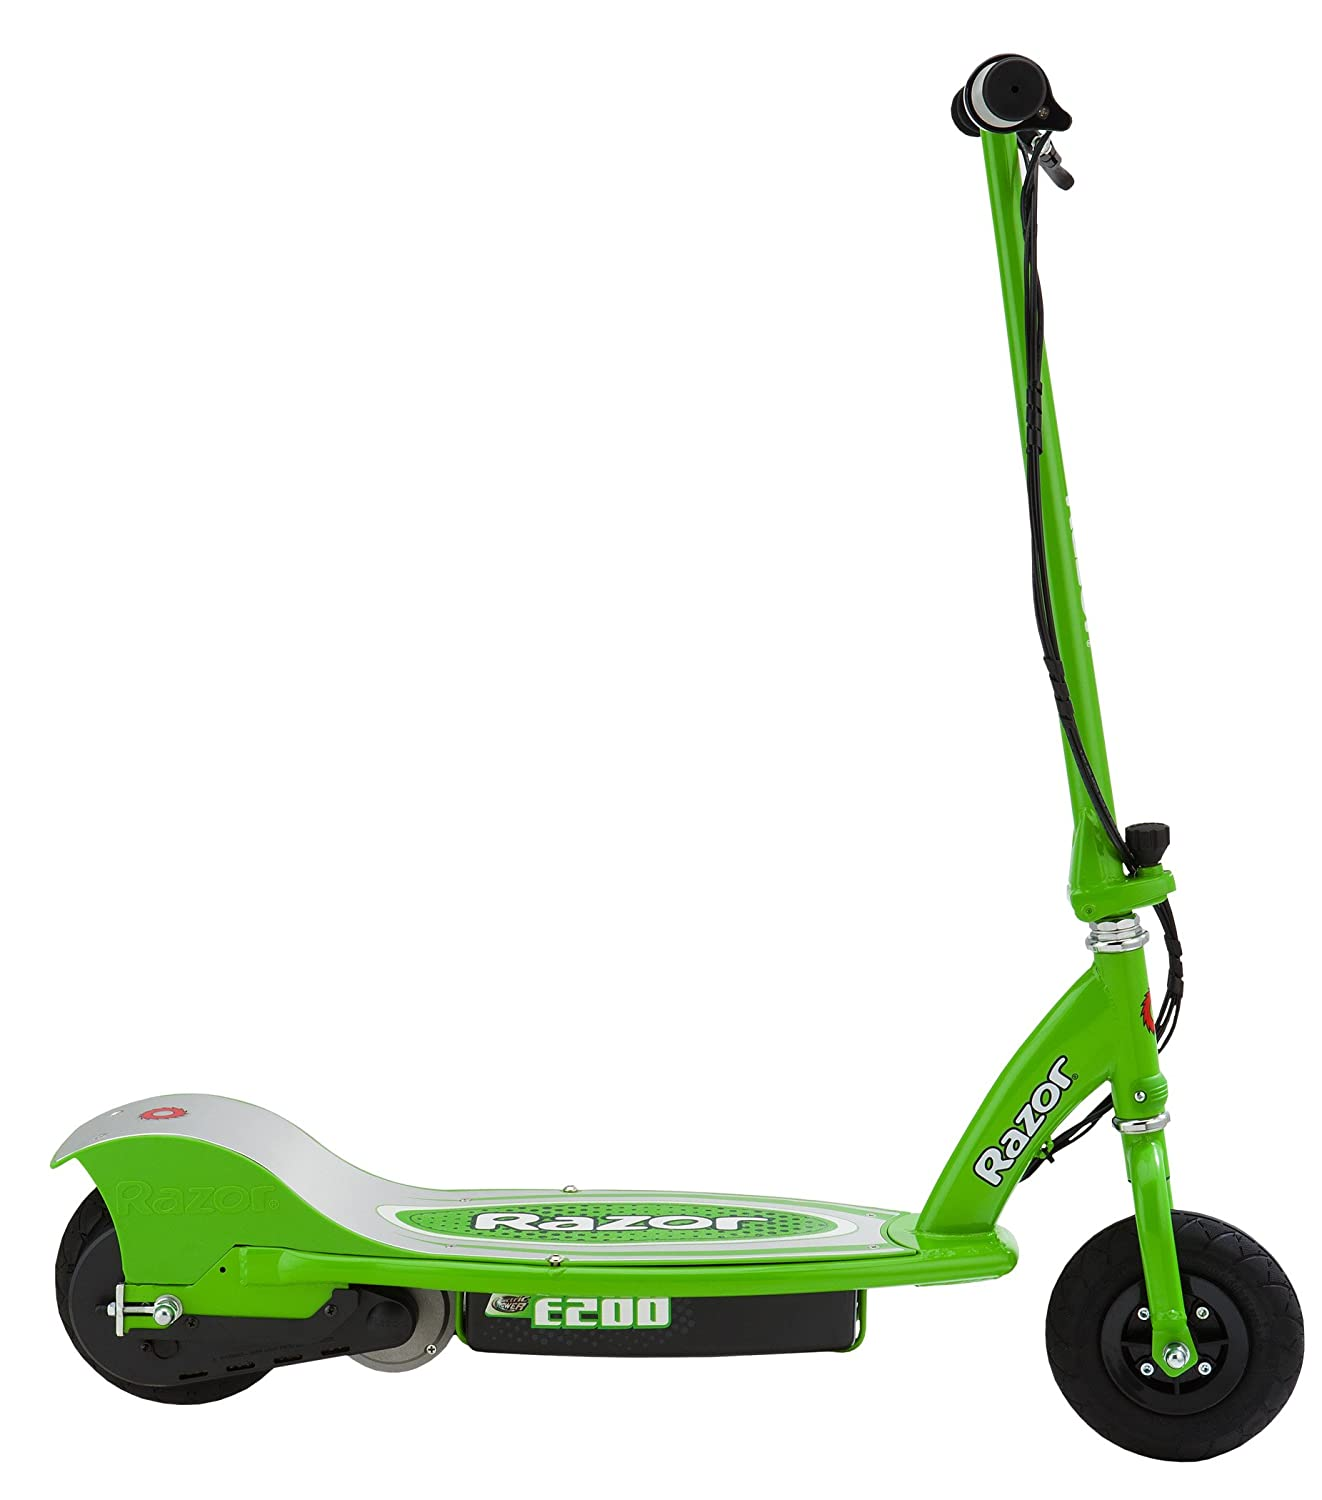 E200 Electric Scooter Razor Motor Scooter